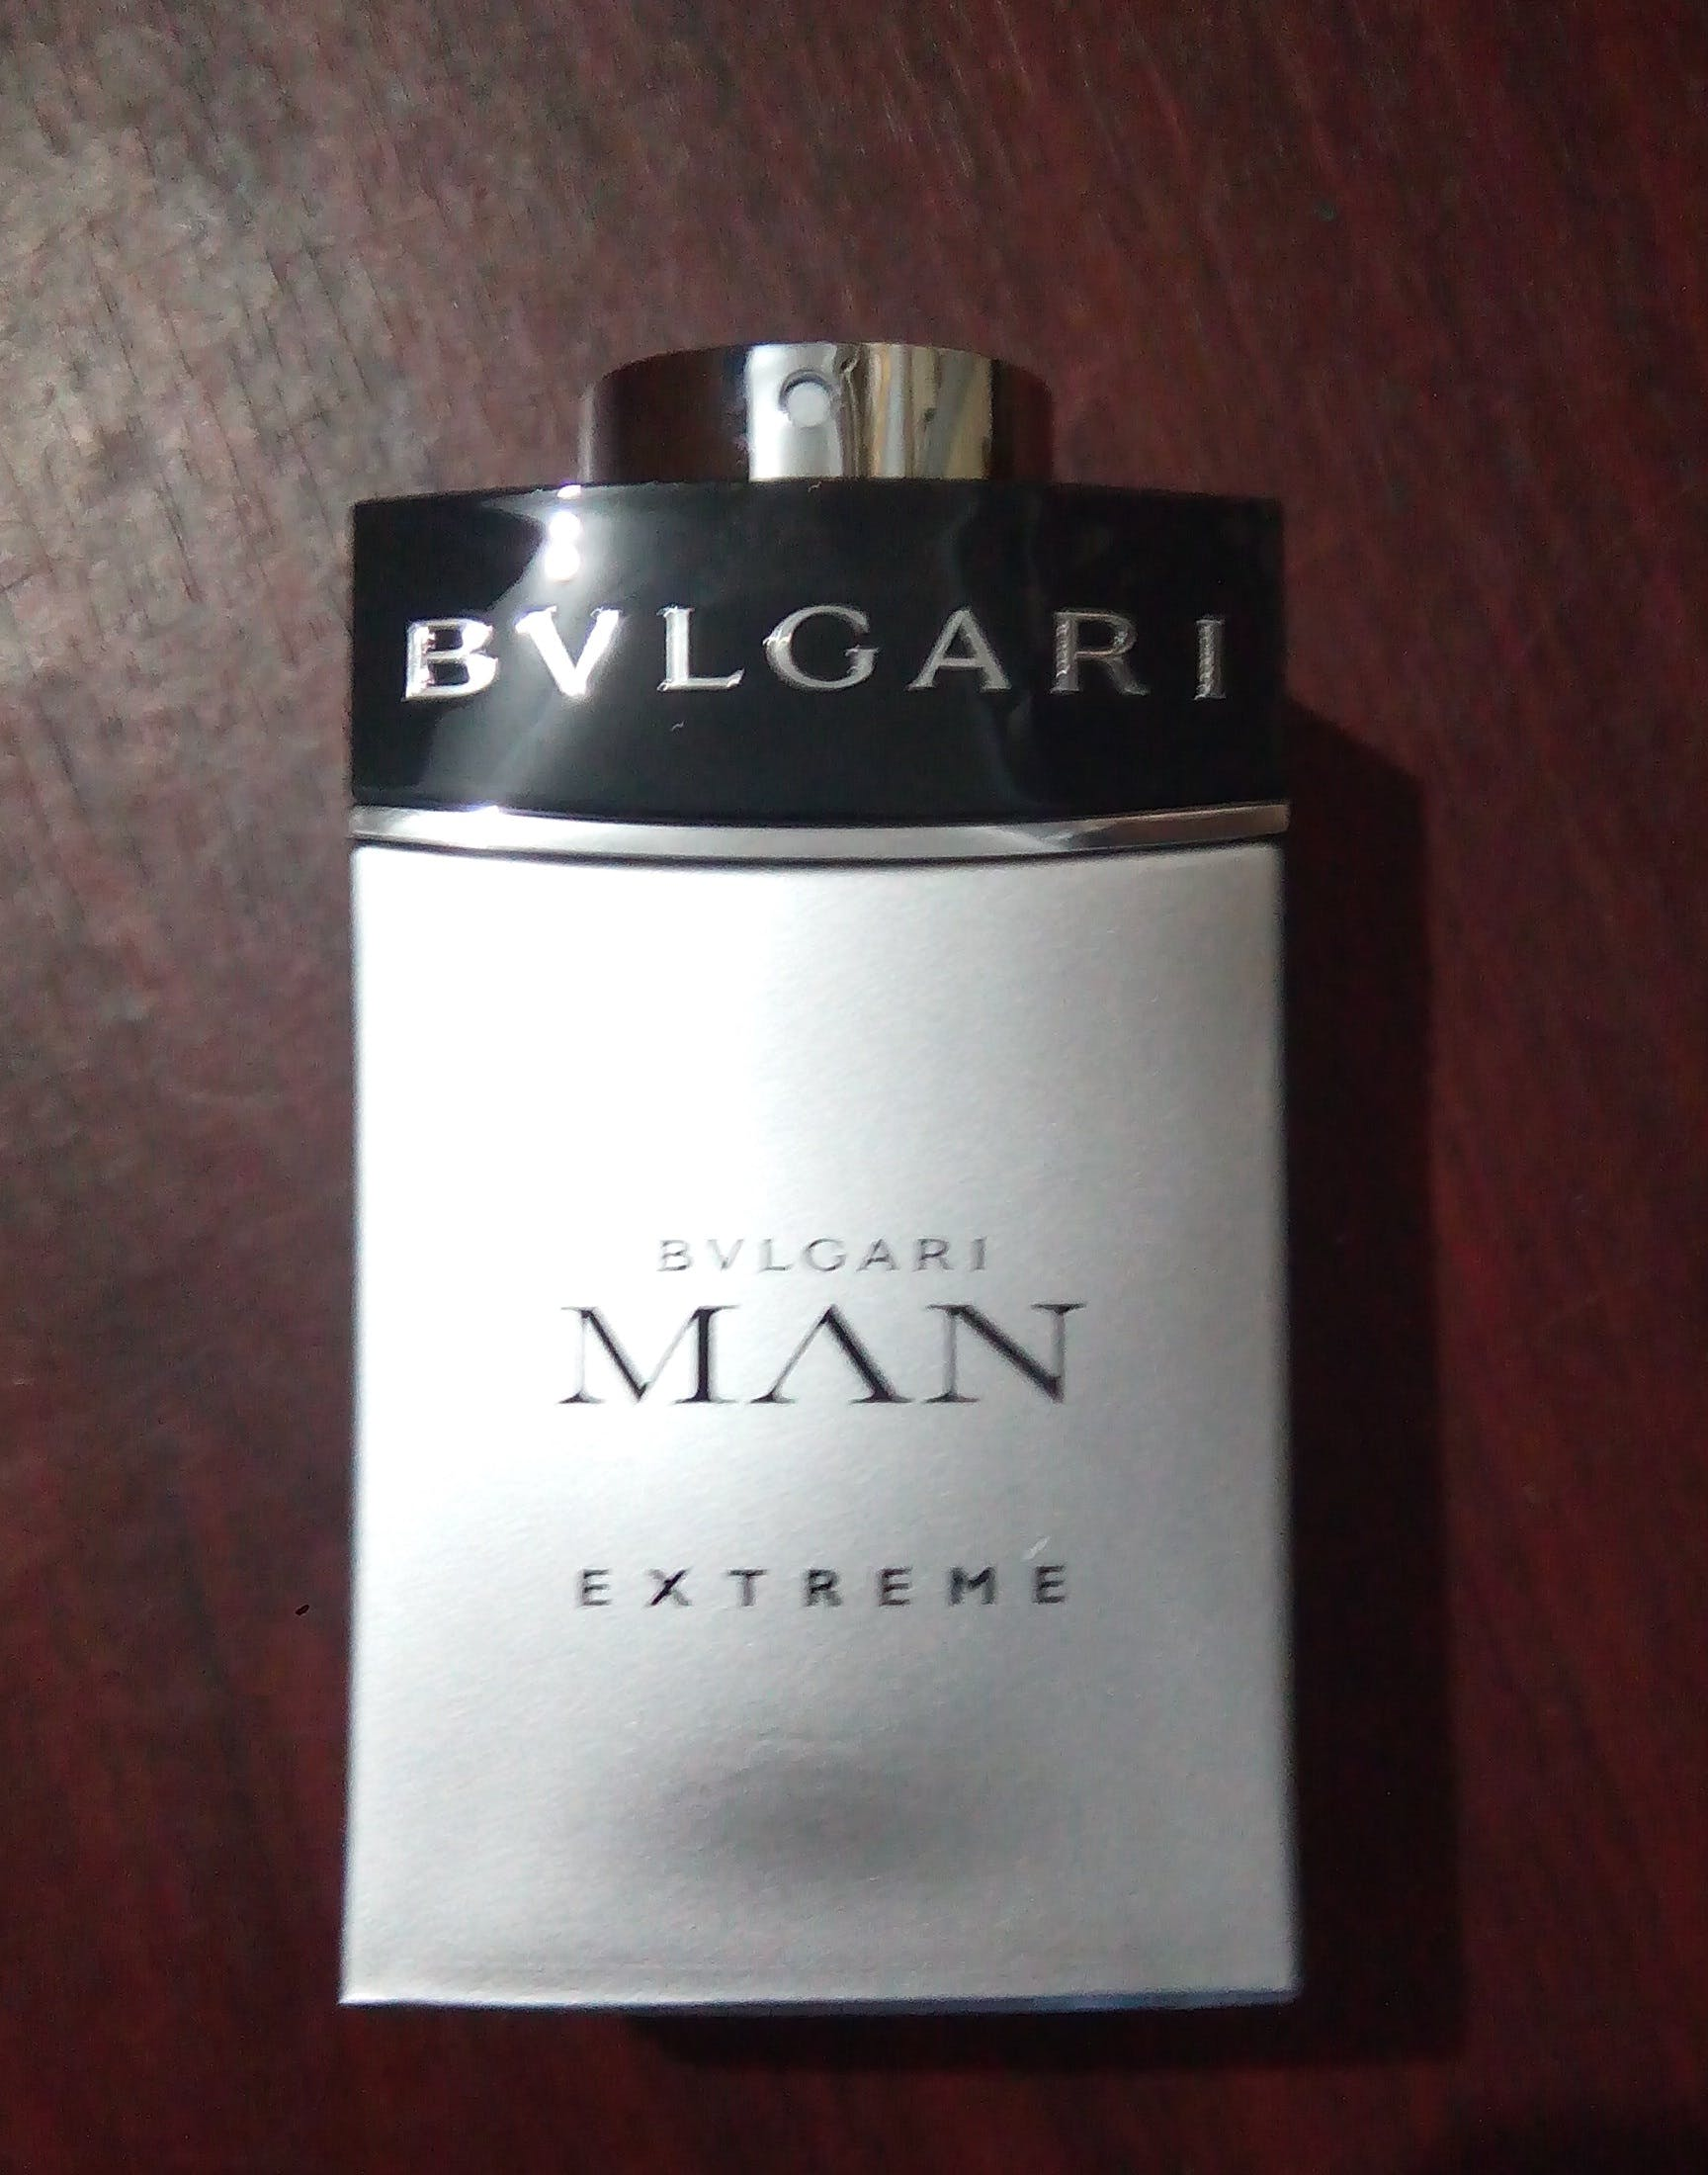 Bvlgari Man Extreme 100ml Perfume Philippines Edt Parfum For Men 100 Ml User Picture